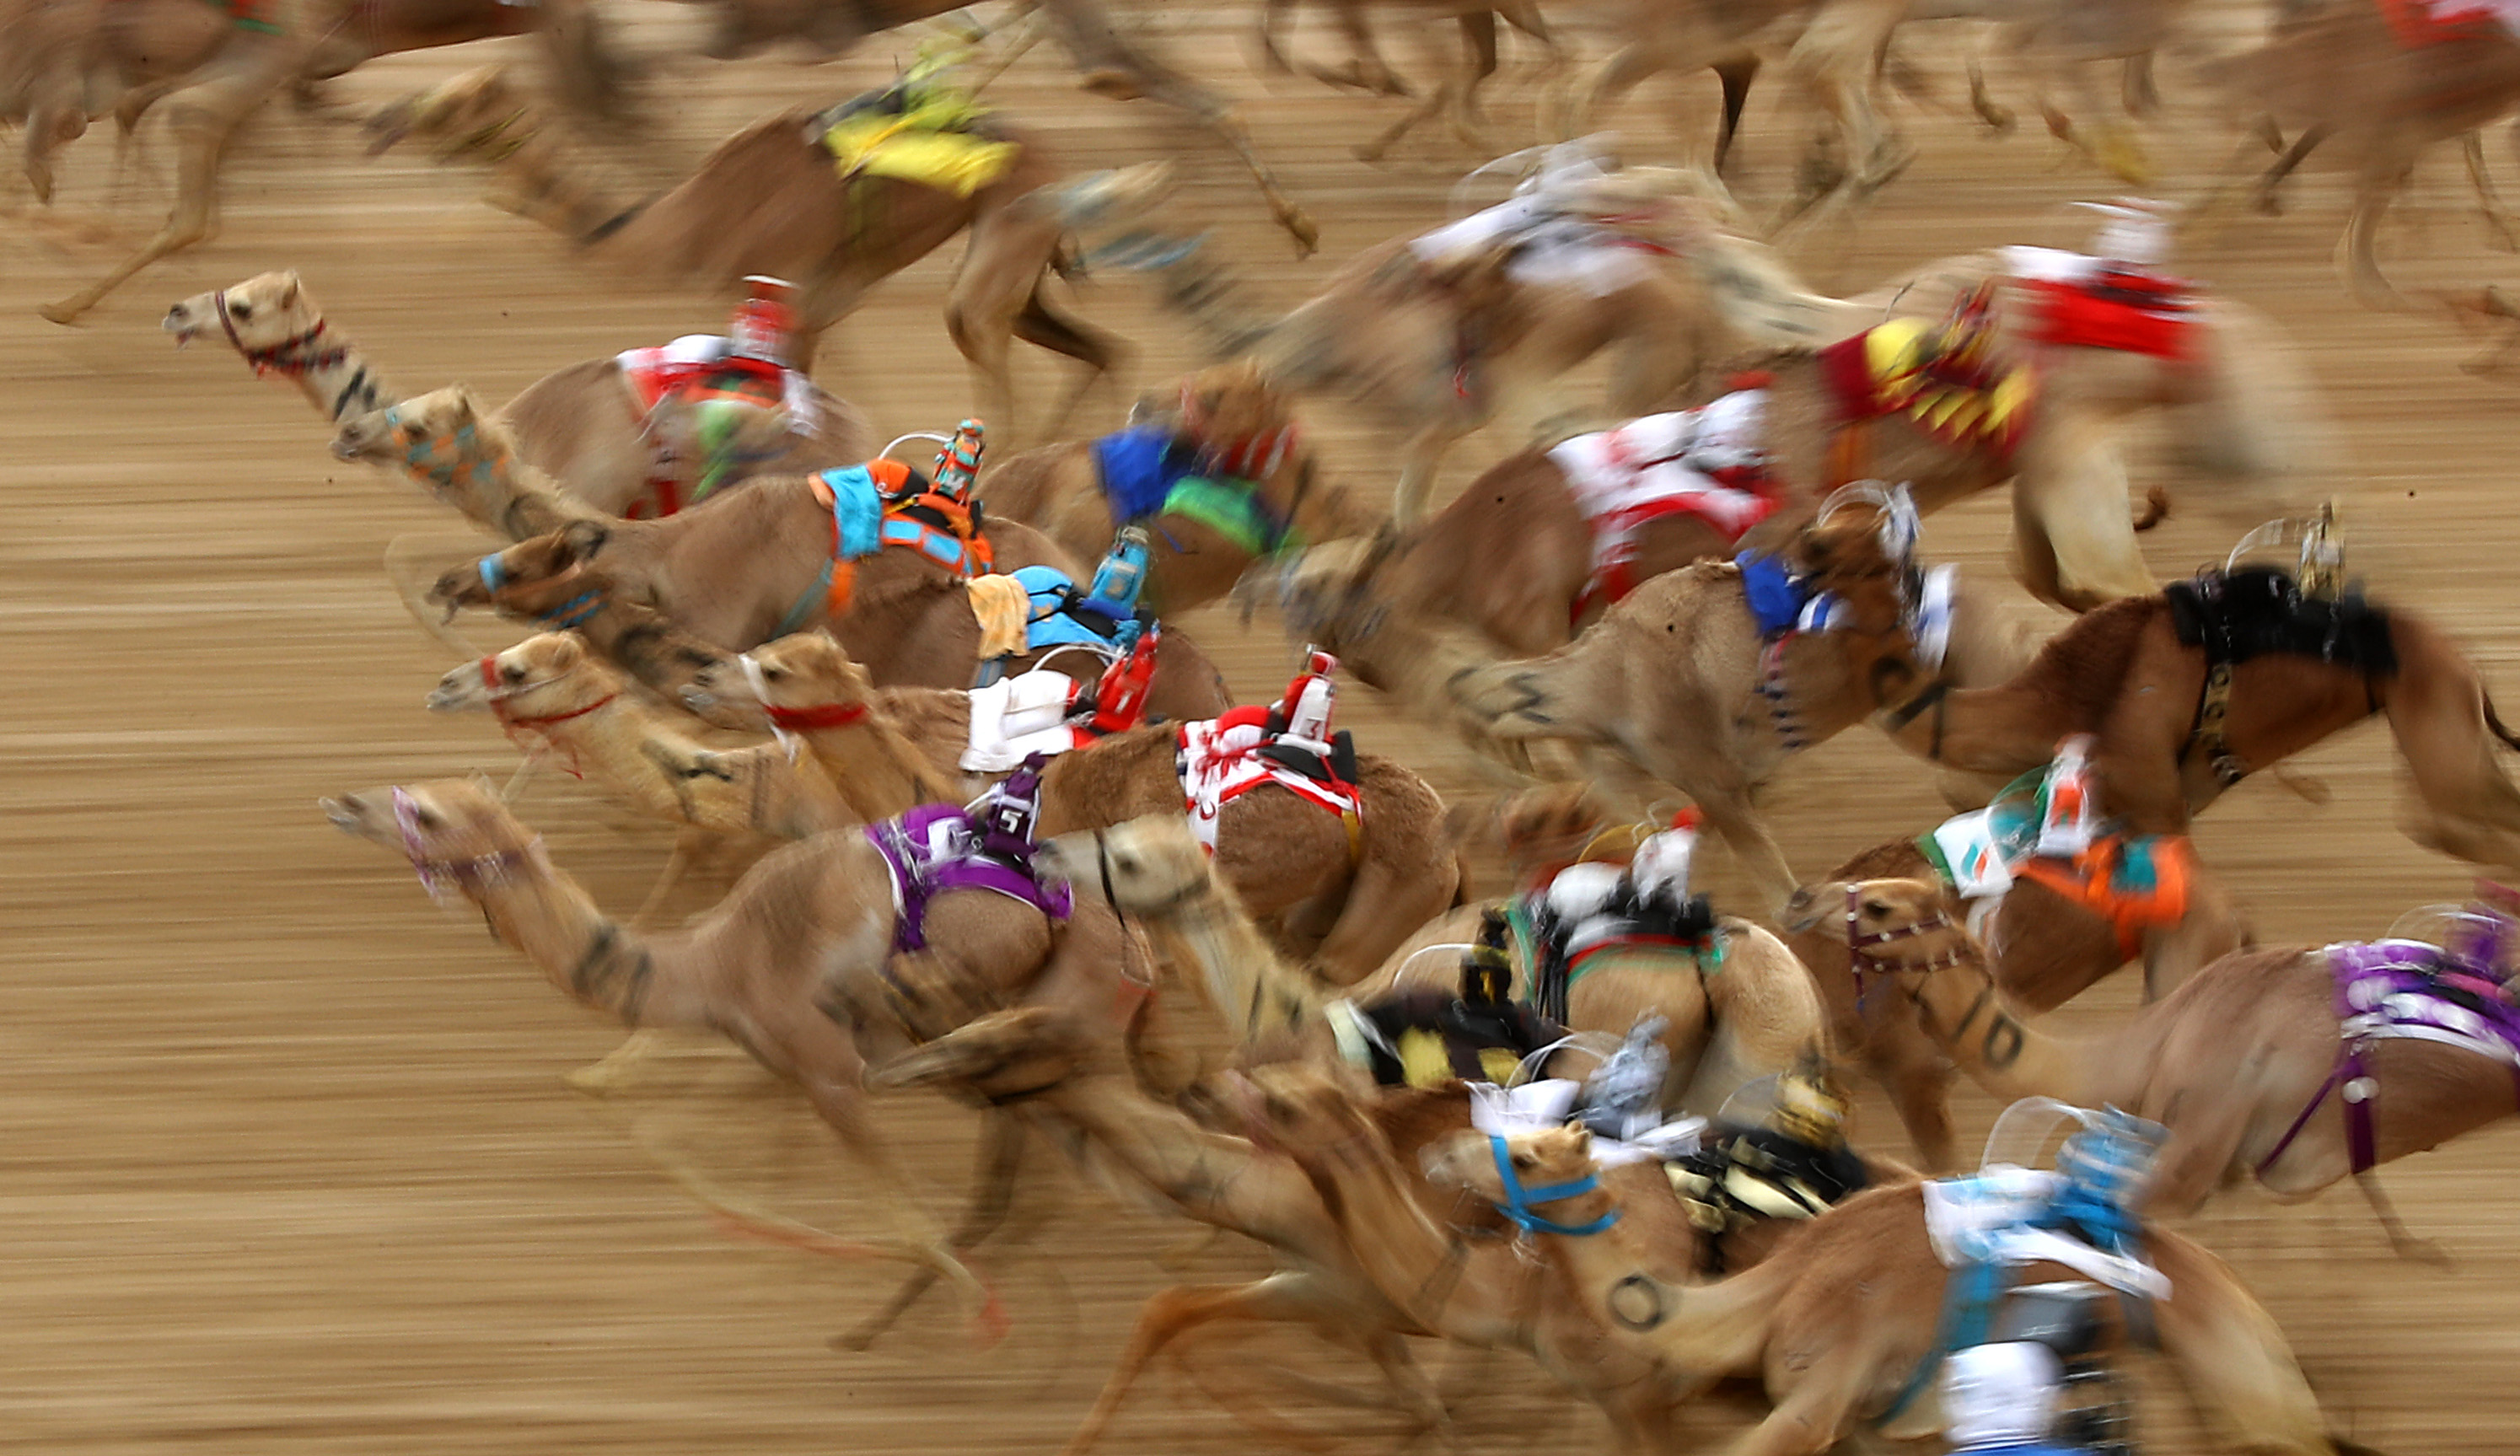 The festival promotes the traditional sport of camel racing within the region.